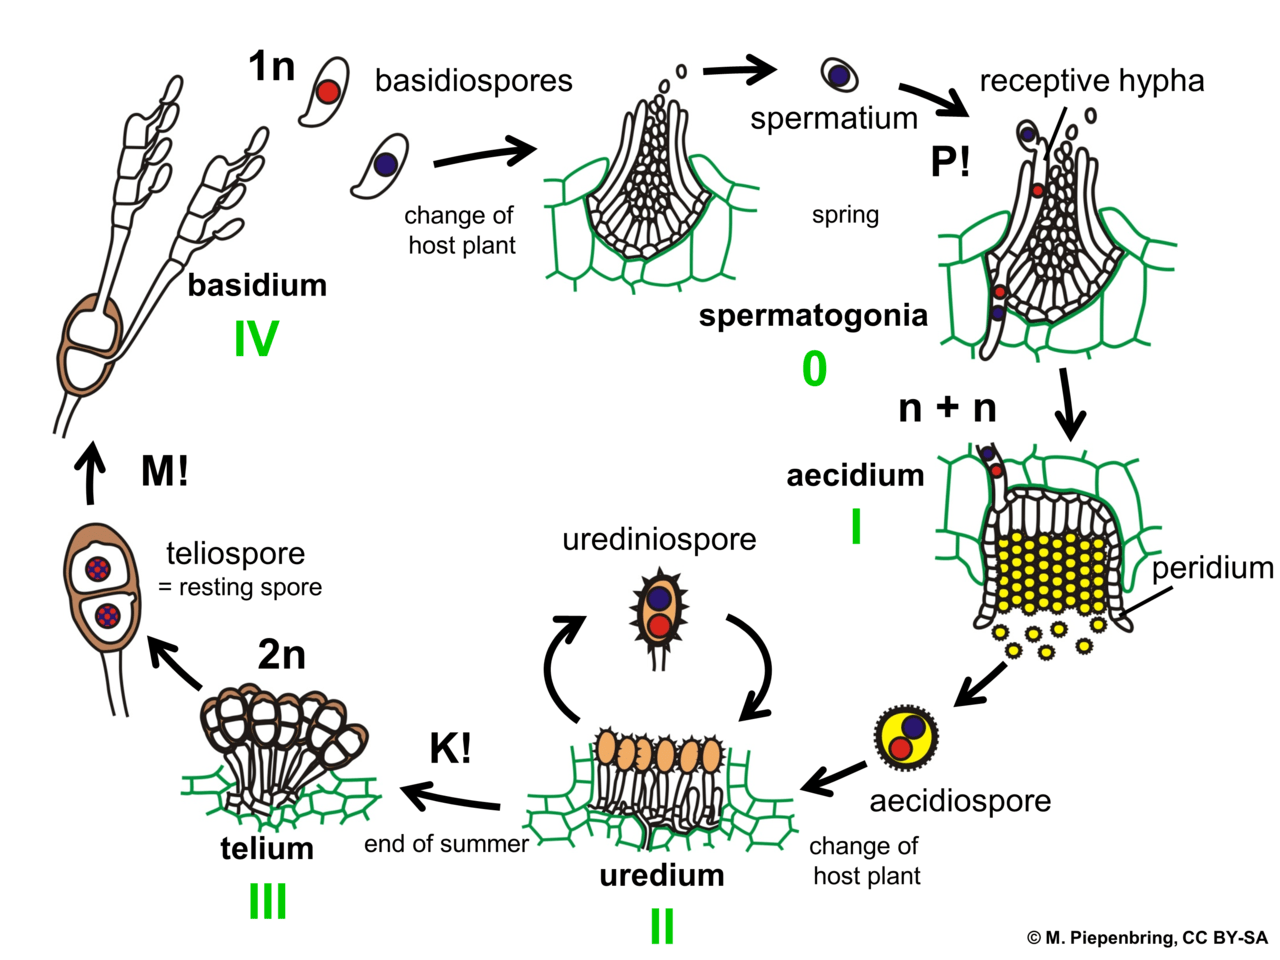 horsetail plant diagram block and circuit wiring diagrams file 03 04 06 life cycle of puccinia graminis on a grass